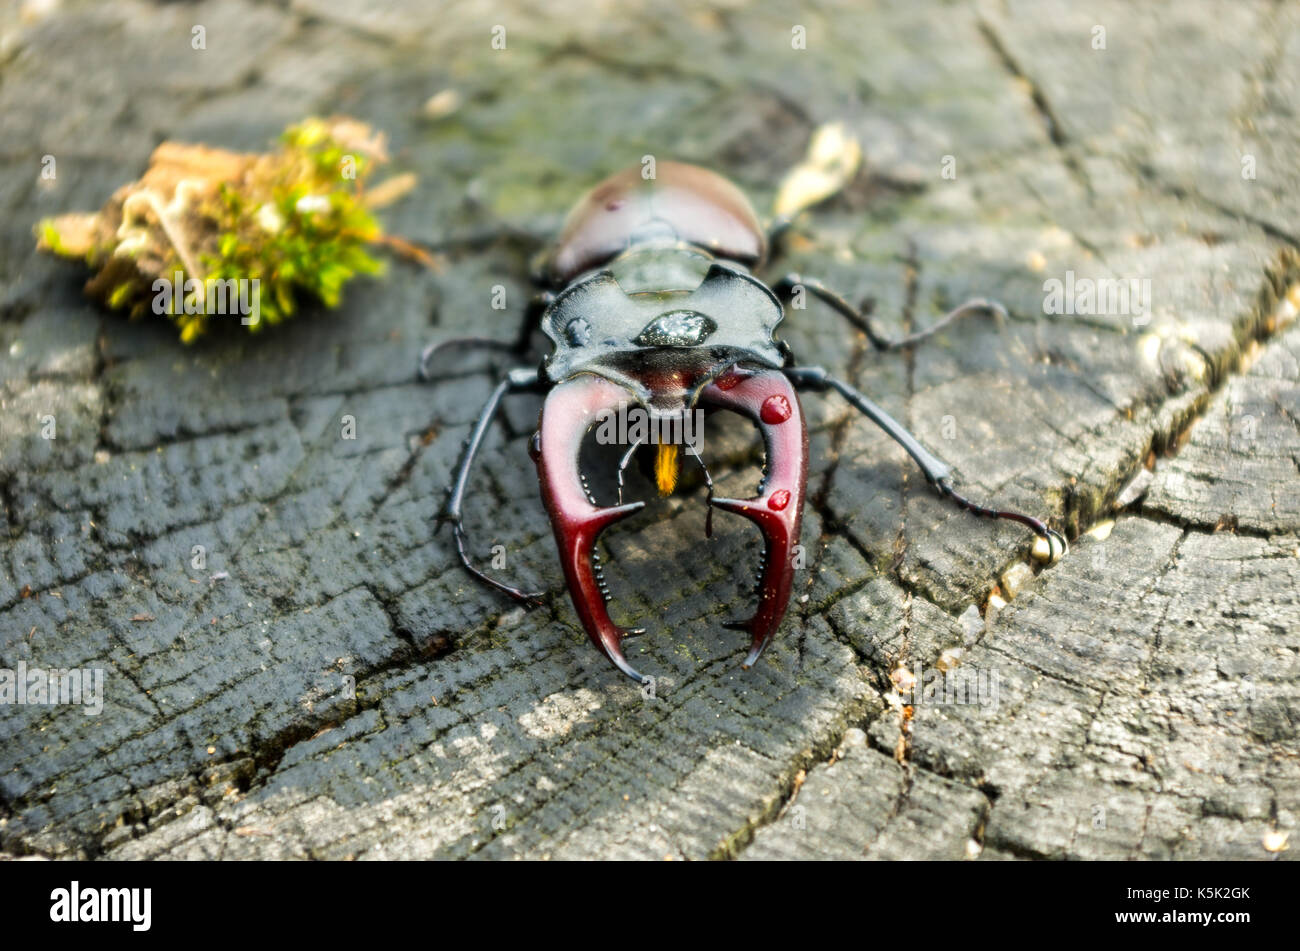 A large insect with horns. A terrible beetle. Horizontal frame. Lucanus cervus in nature. - Stock Image